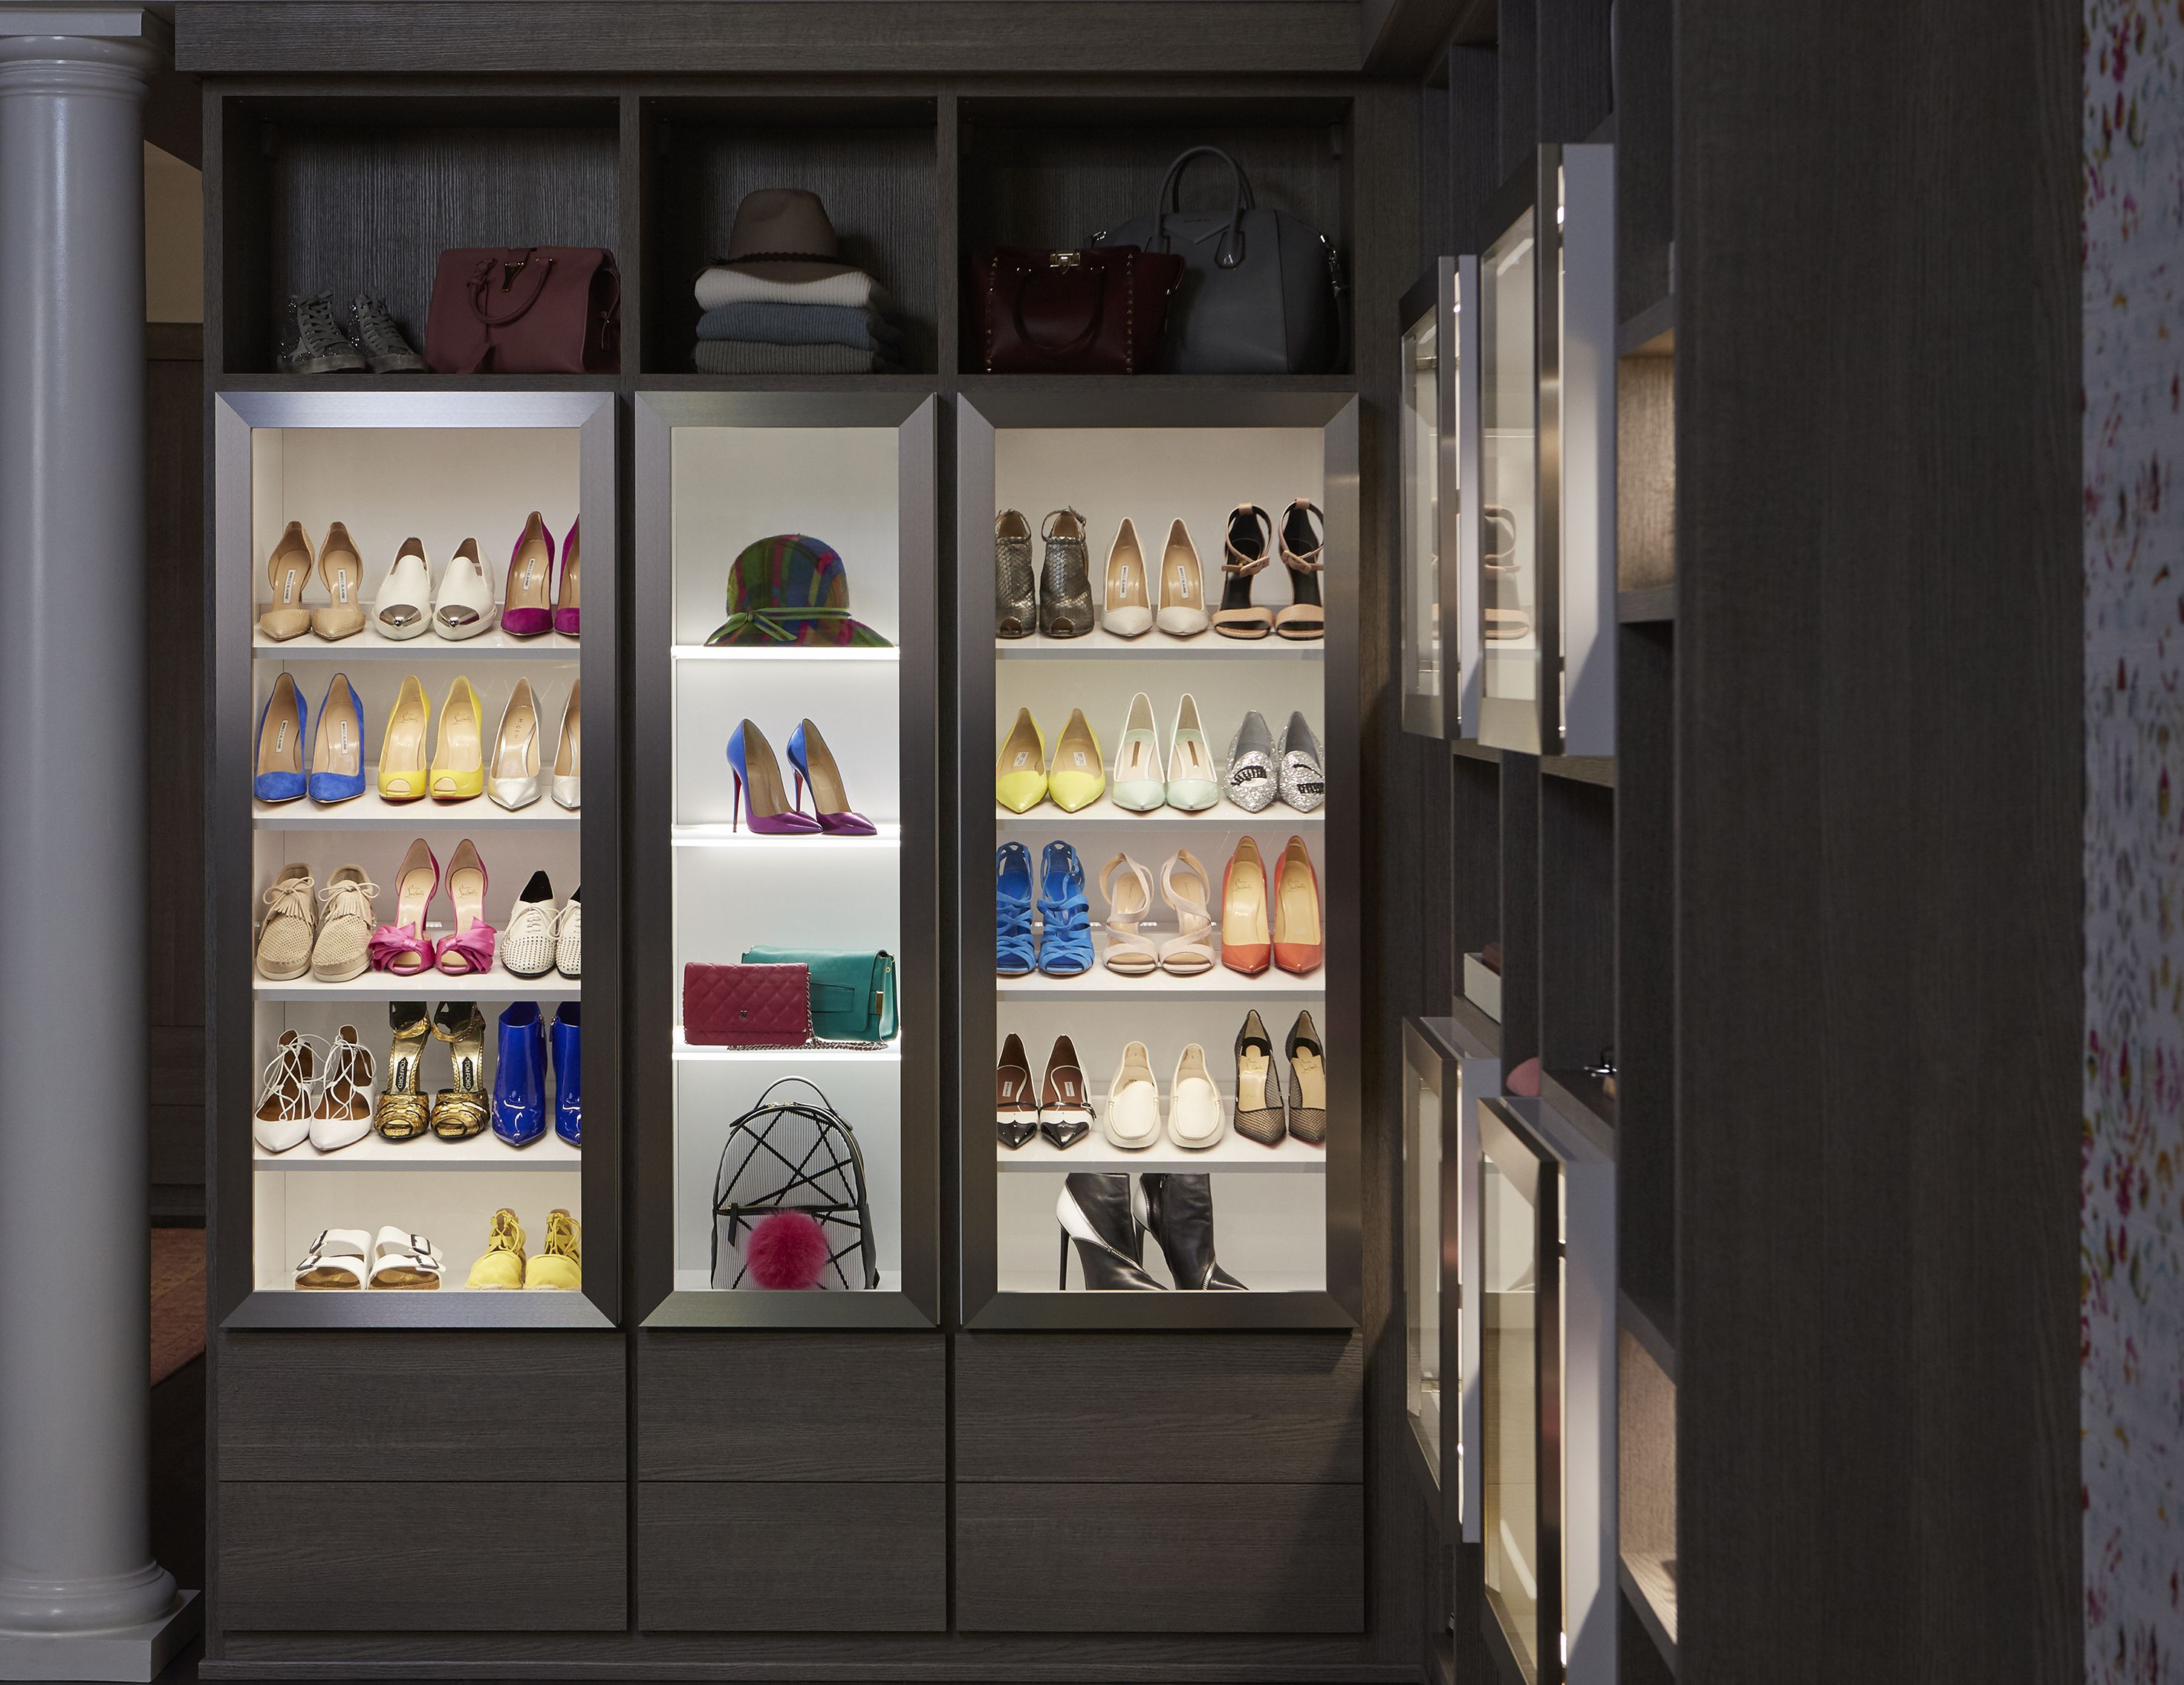 Store dresses in this type of cabinet